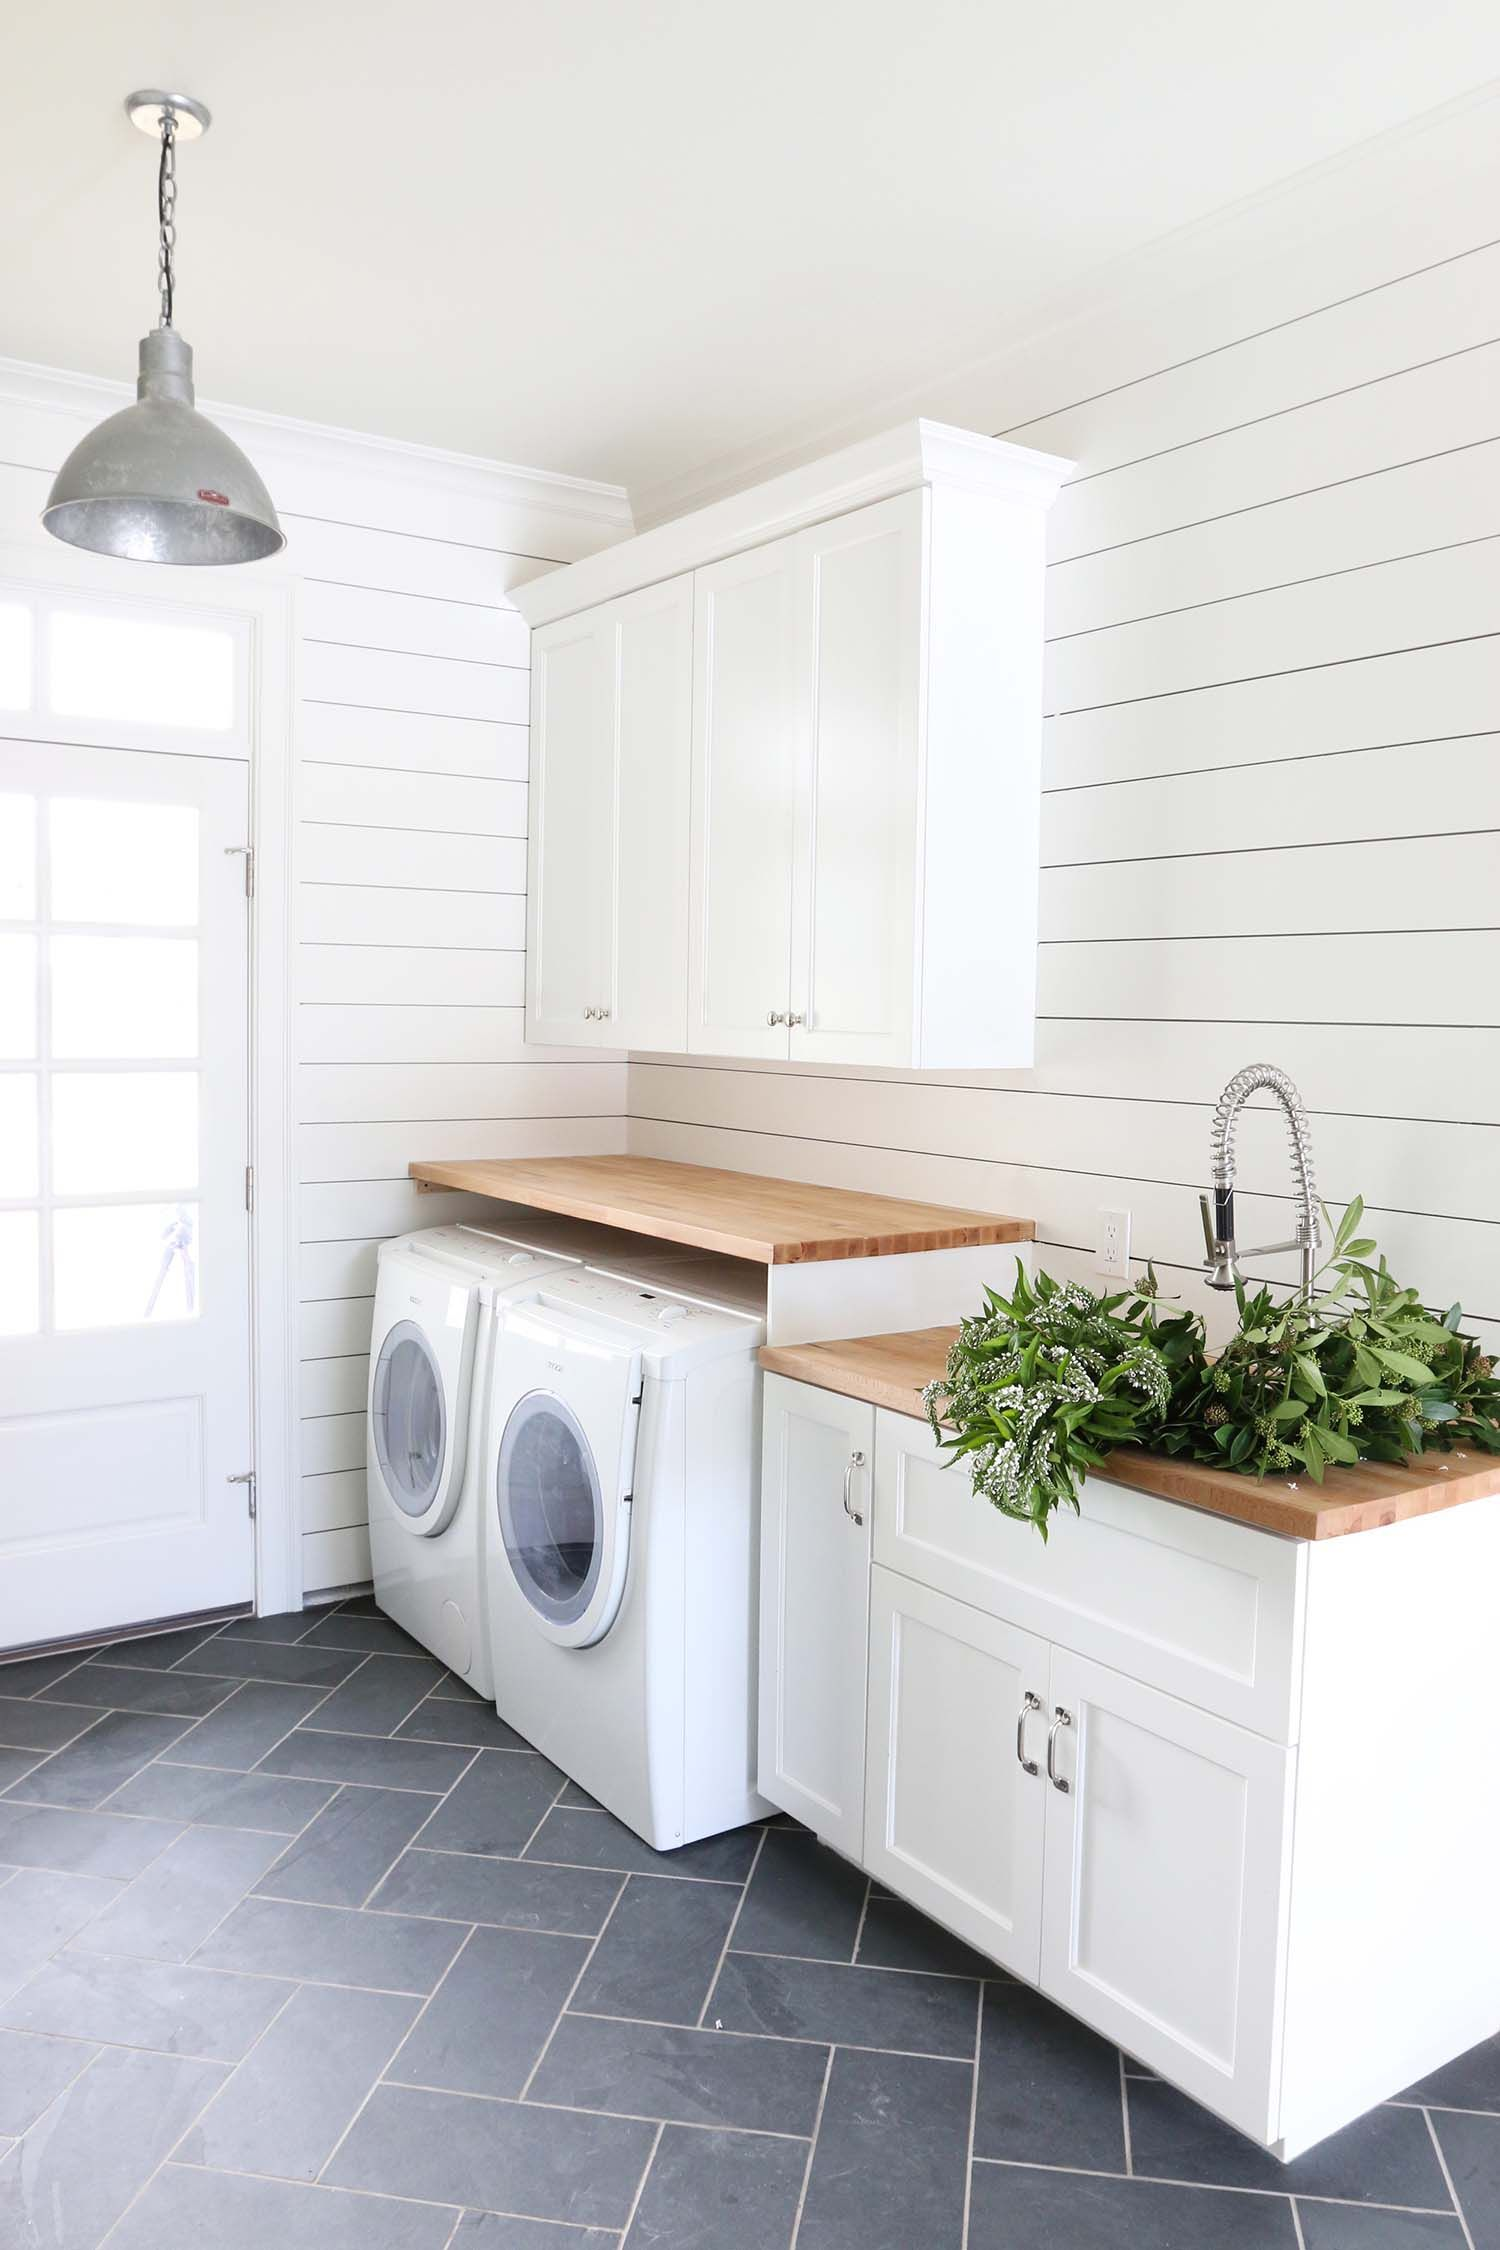 37 Most beautiful examples of using shiplap in the home | Wall ideas Causal Board Bathroom Design on house design boards, bathroom wall board, tile design boards, room design boards, kitchen design boards, interior design inspiration boards, jewelry design boards, office design boards, architecture design boards, commercial design boards, car design boards, art boards, furniture design boards, hotel design boards, fireplaces boards, living design boards, asian interior design boards, bathroom home, bedroom design boards, exterior design boards,